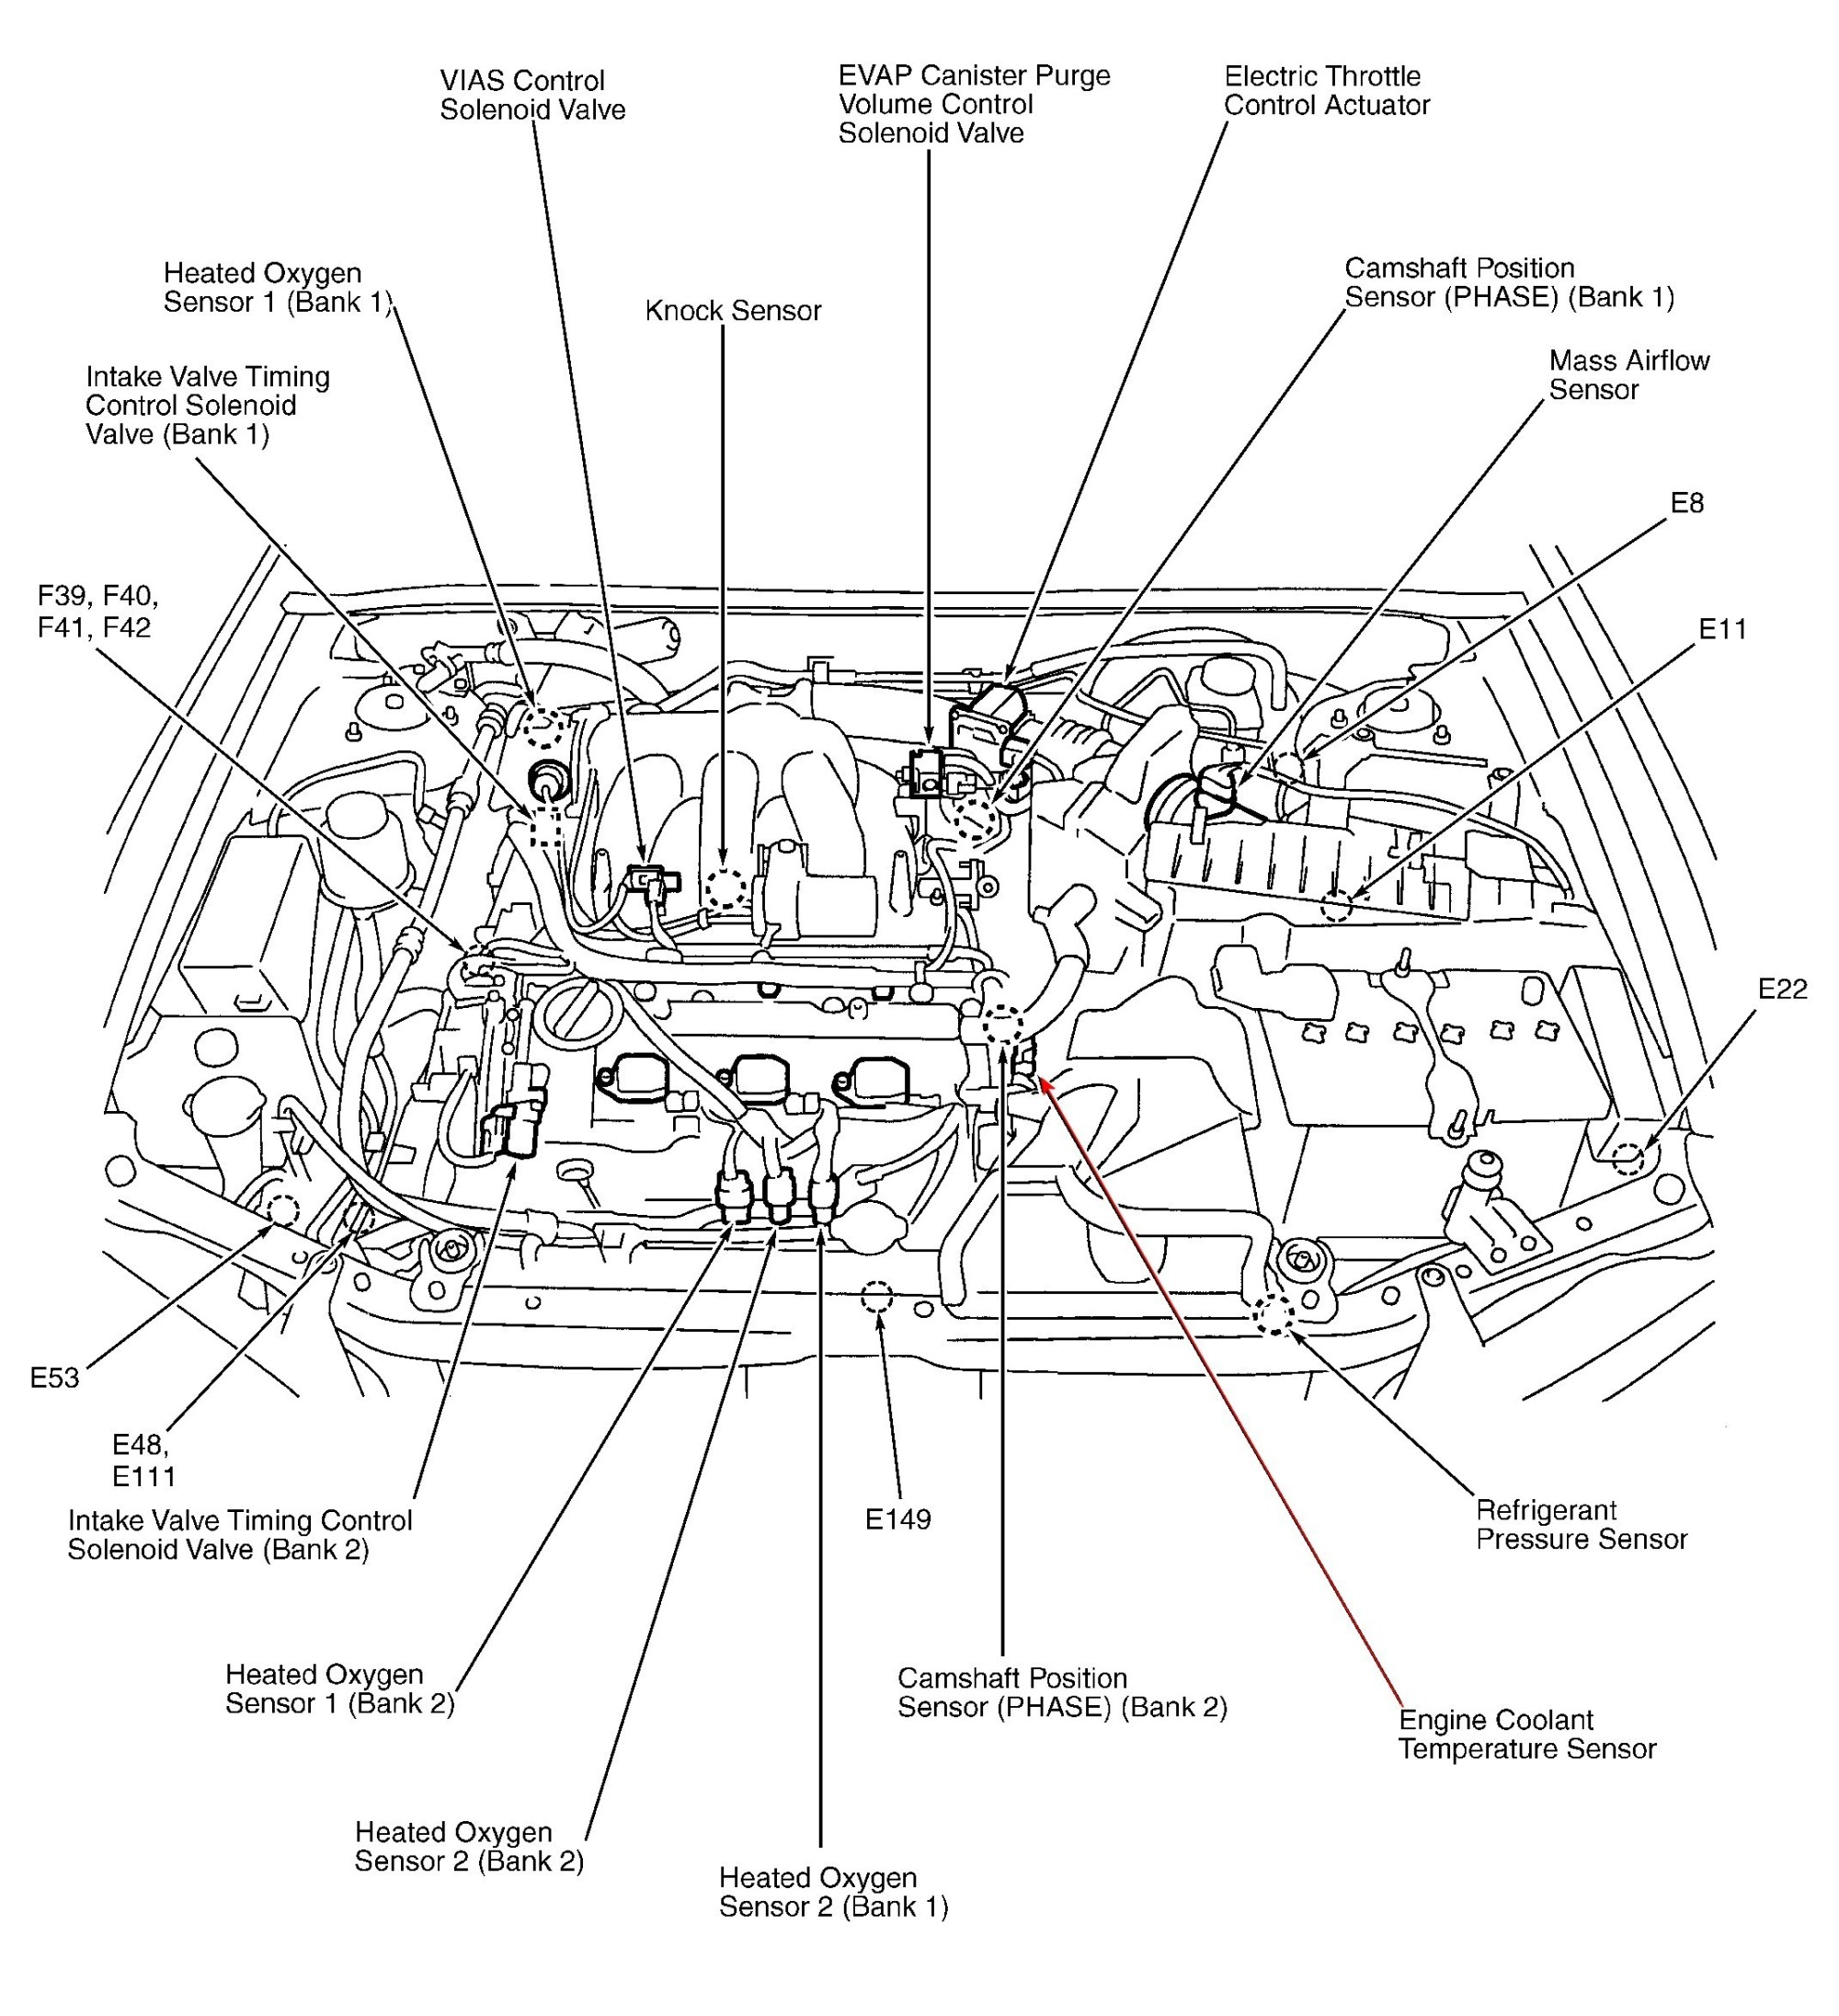 hight resolution of 2001 suzuki vitara engine diagram wiring diagrams konsult 2001 suzuki vitara engine diagram wiring diagram view